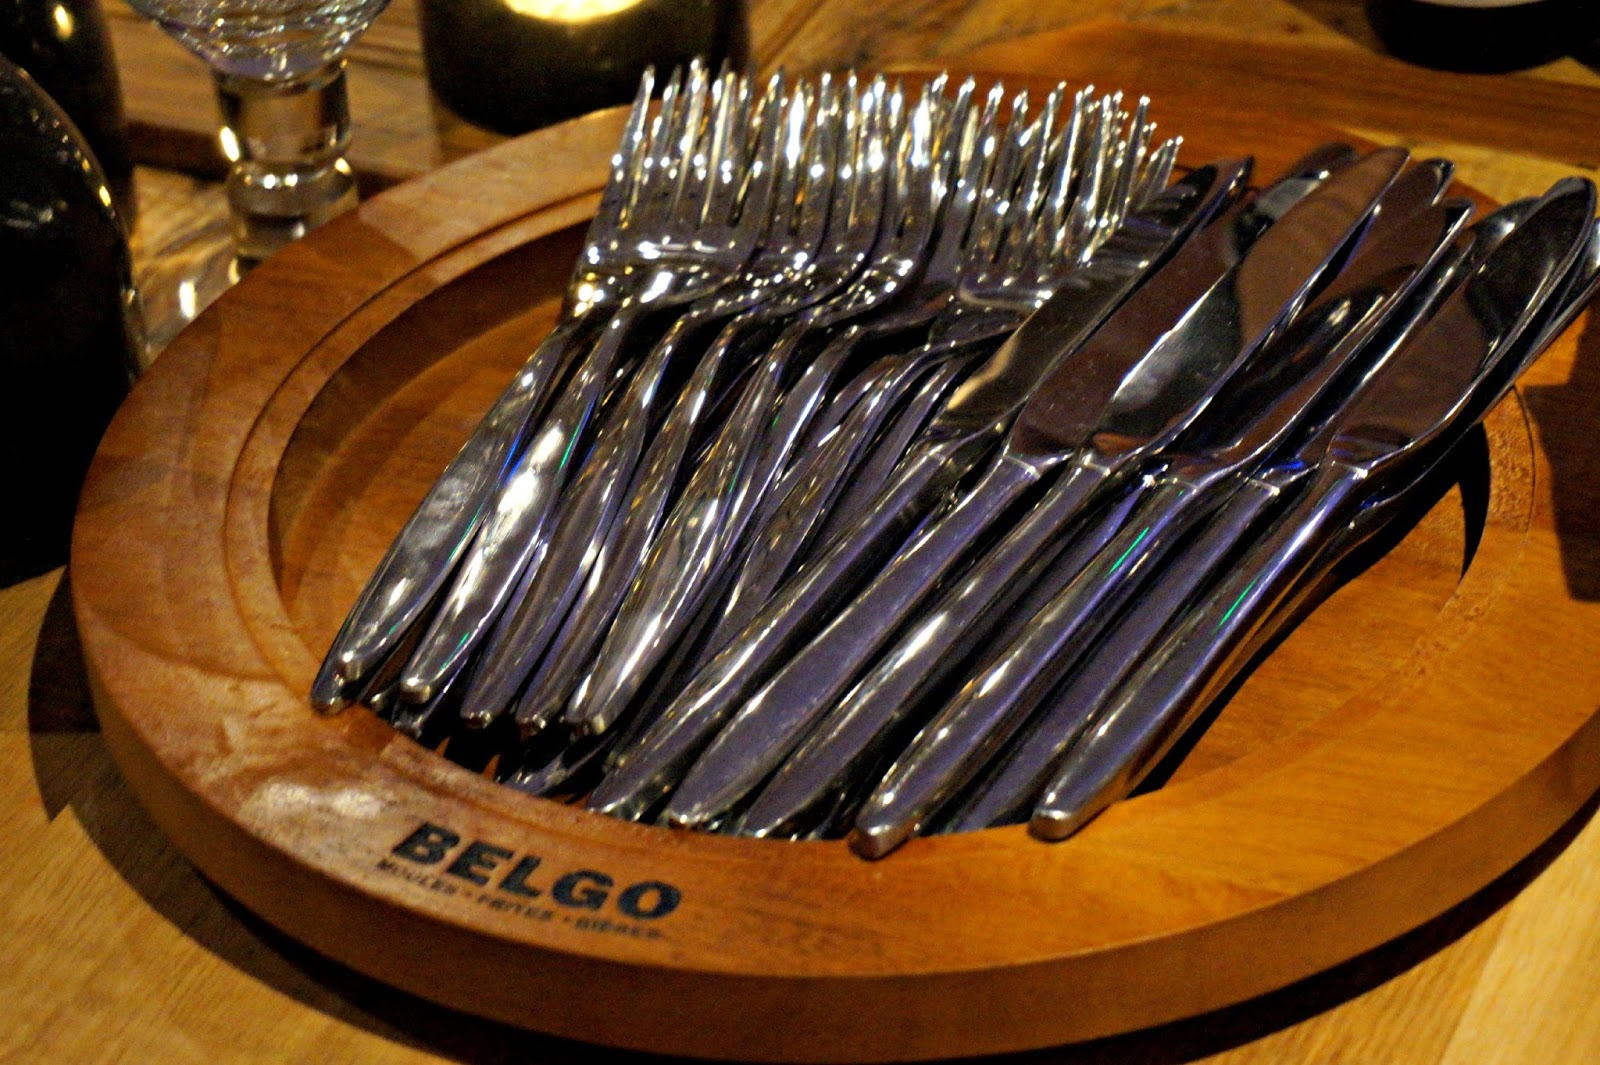 cutlery in a bowl